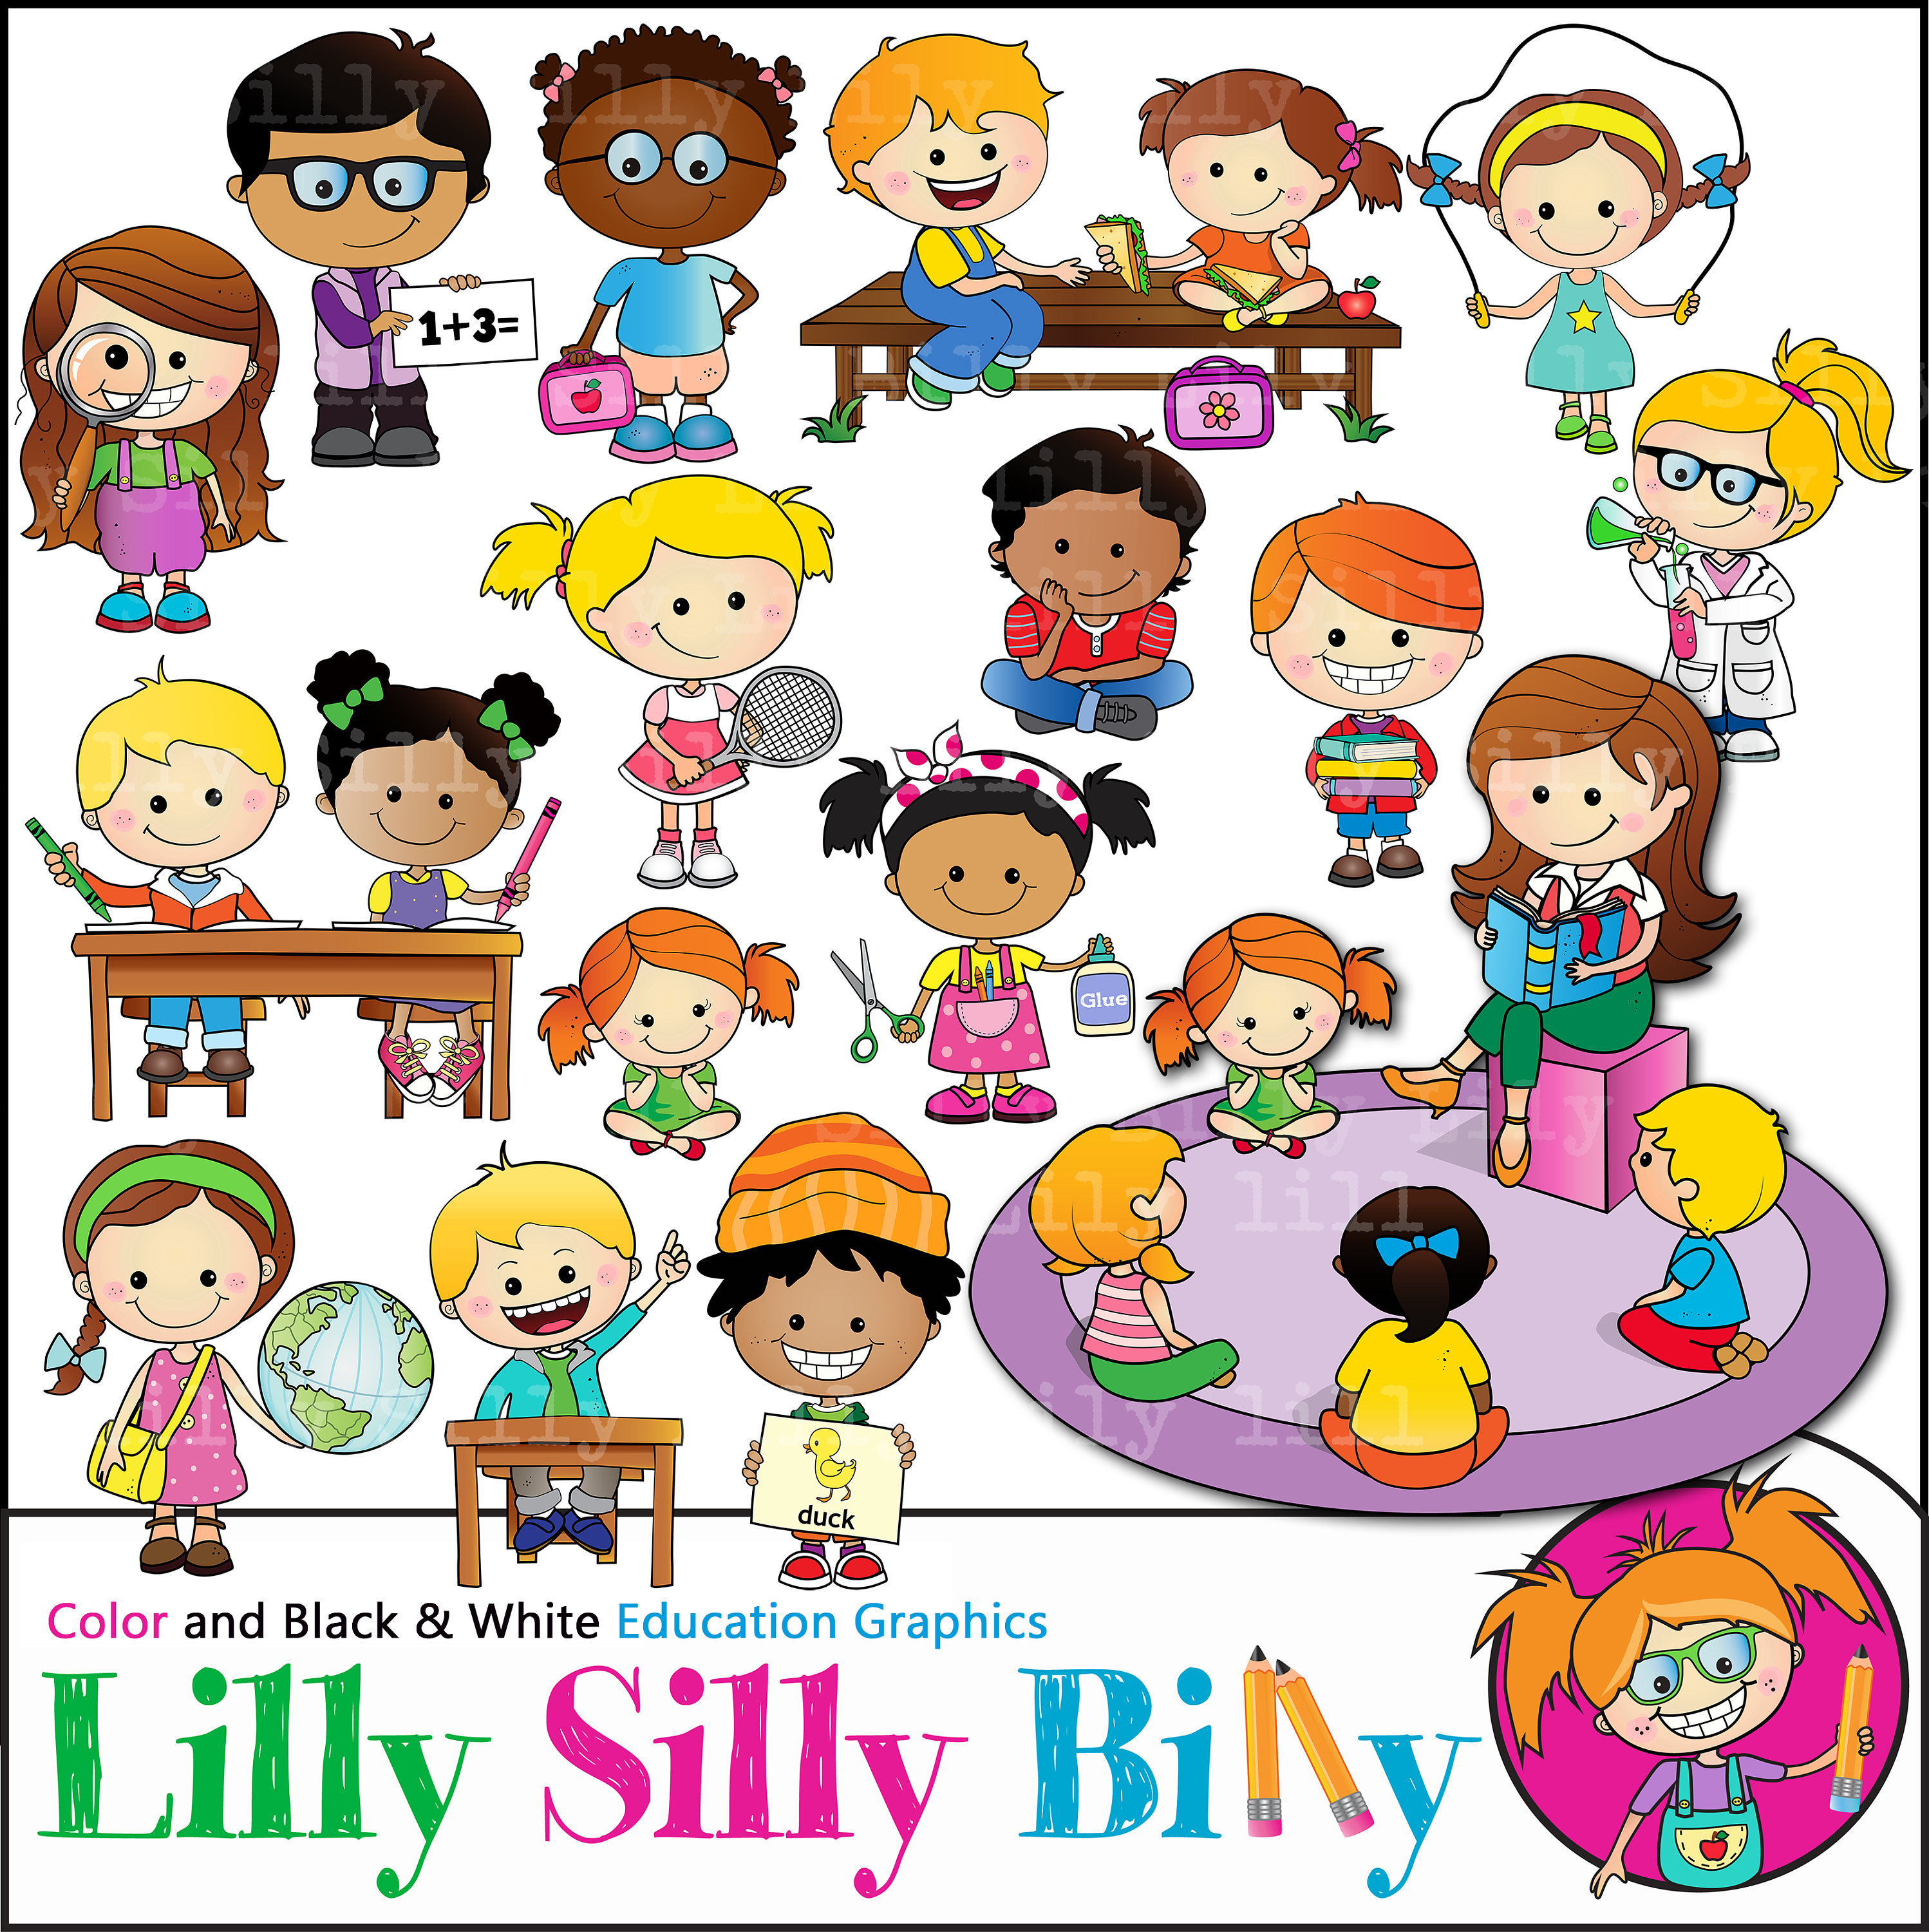 Geography clipart learning. School agenda depicting children